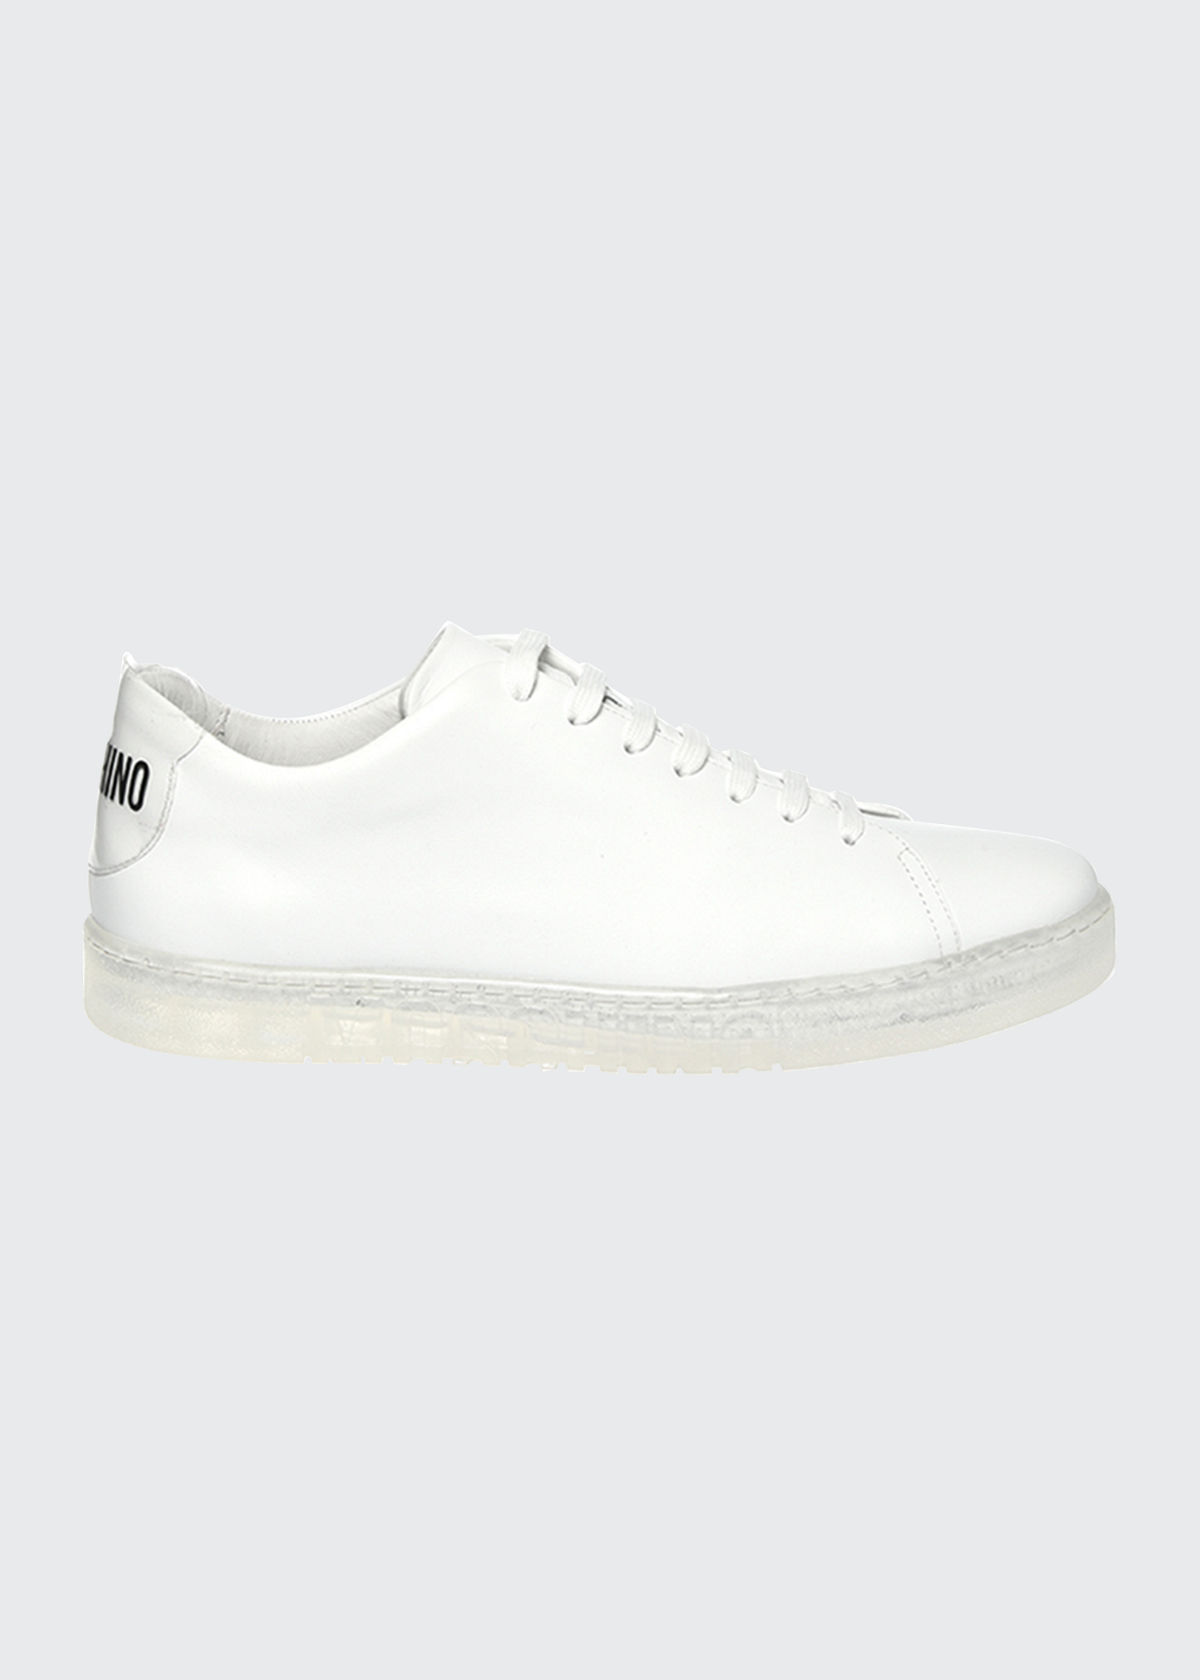 Moschino MEN'S LOGO CLEAR-SOLE LOW-TOP SNEAKERS